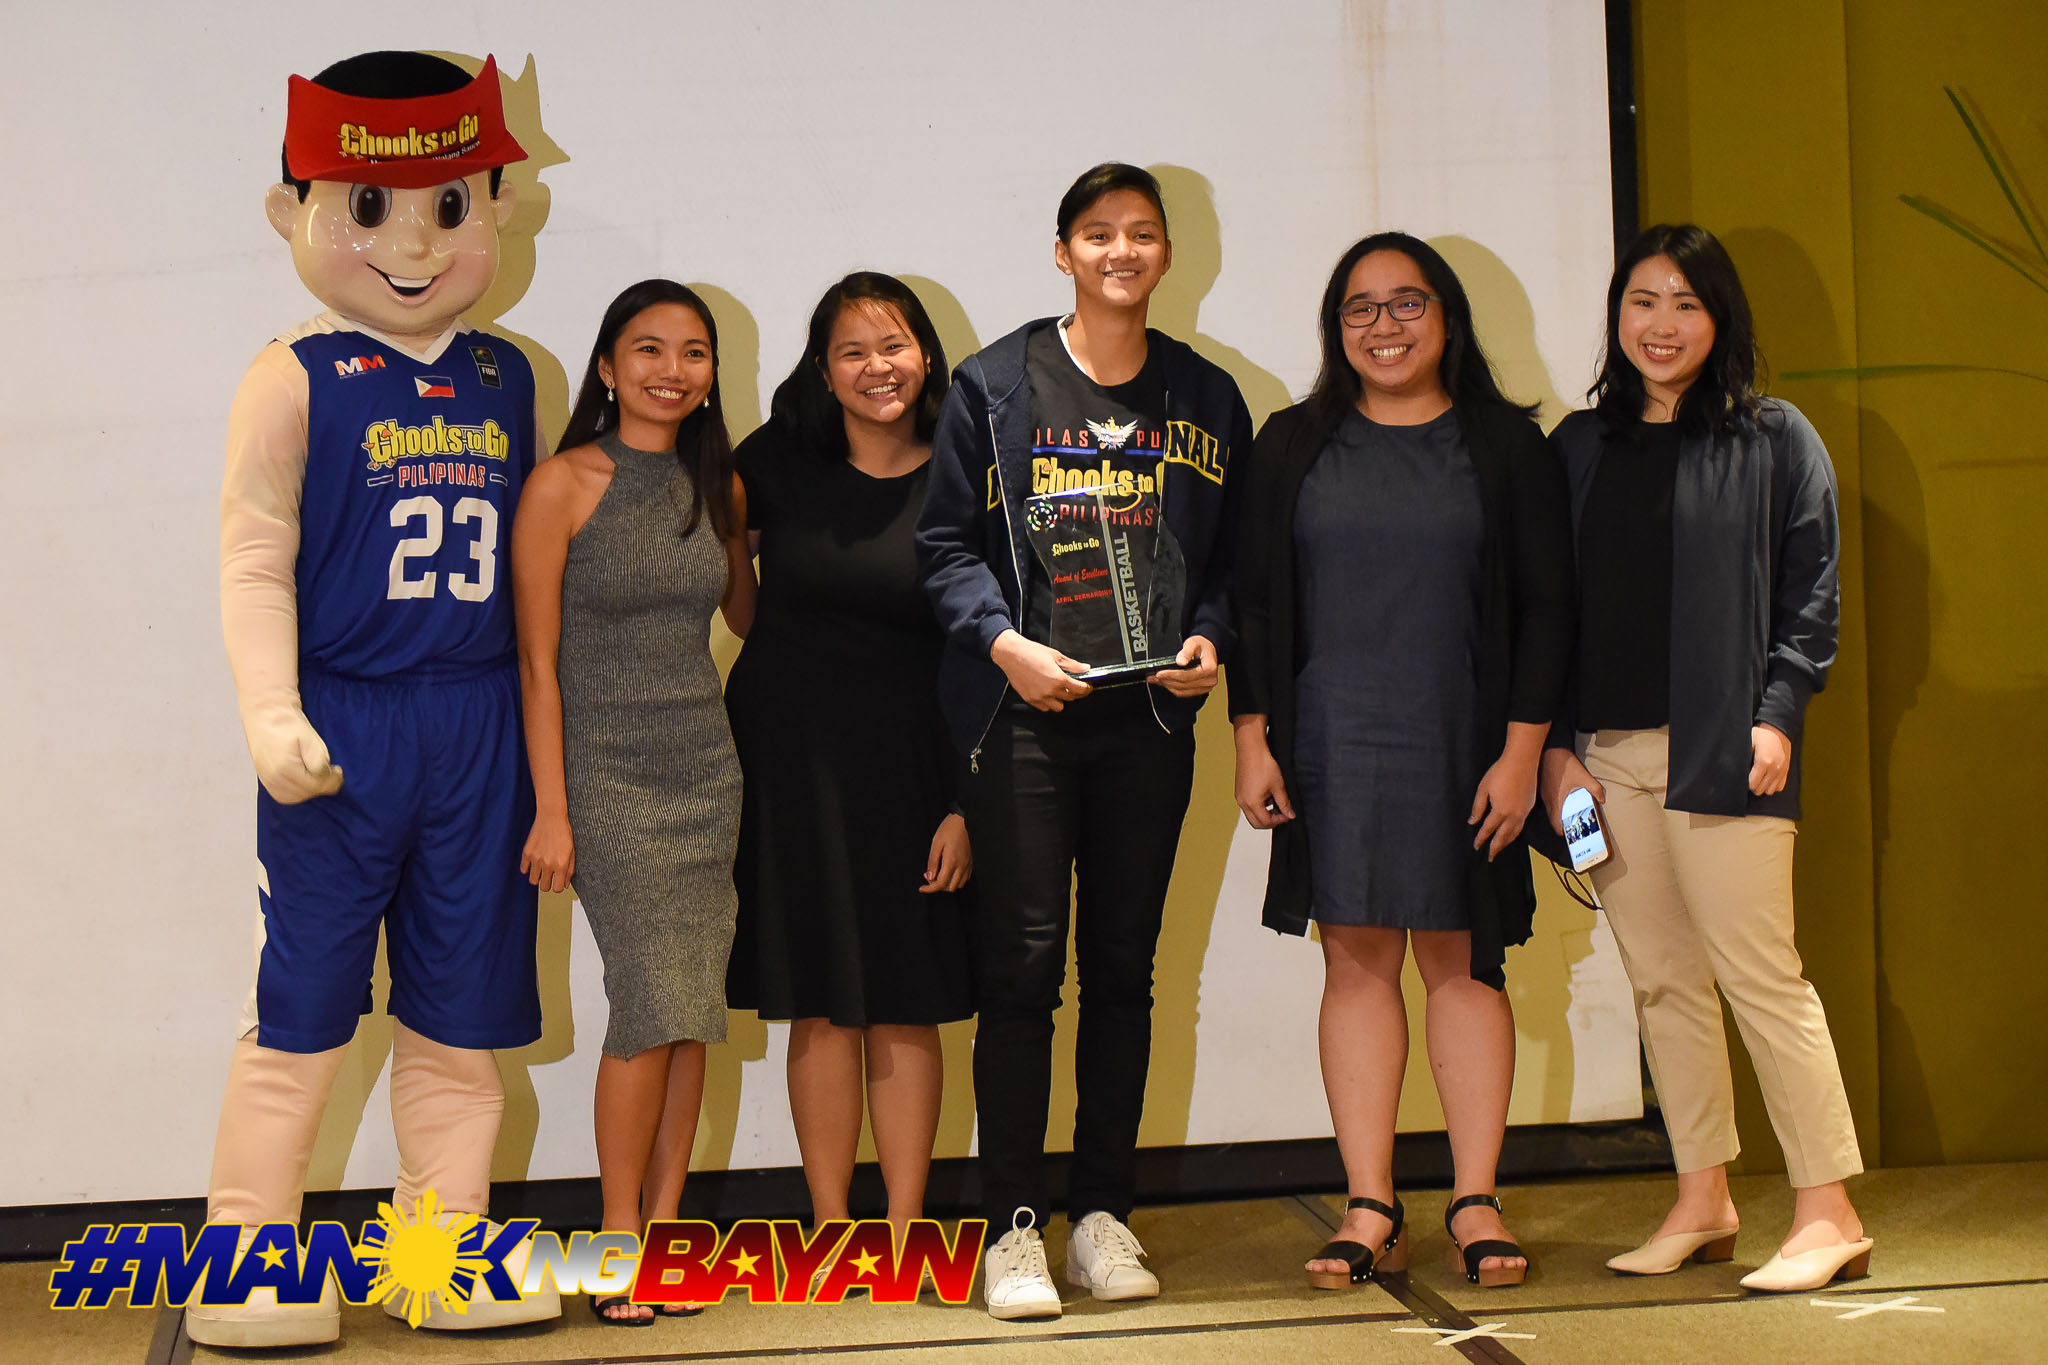 Tiebreaker Times Afril Bernardino honored for her contributions to Women's Collegiate Basketball Basketball News NU UAAP  UAAP Season 80 3x3 Basketball UAAP Season 80 NU Women's Basketball Afril Bernardino 2018 Collegiate Awards